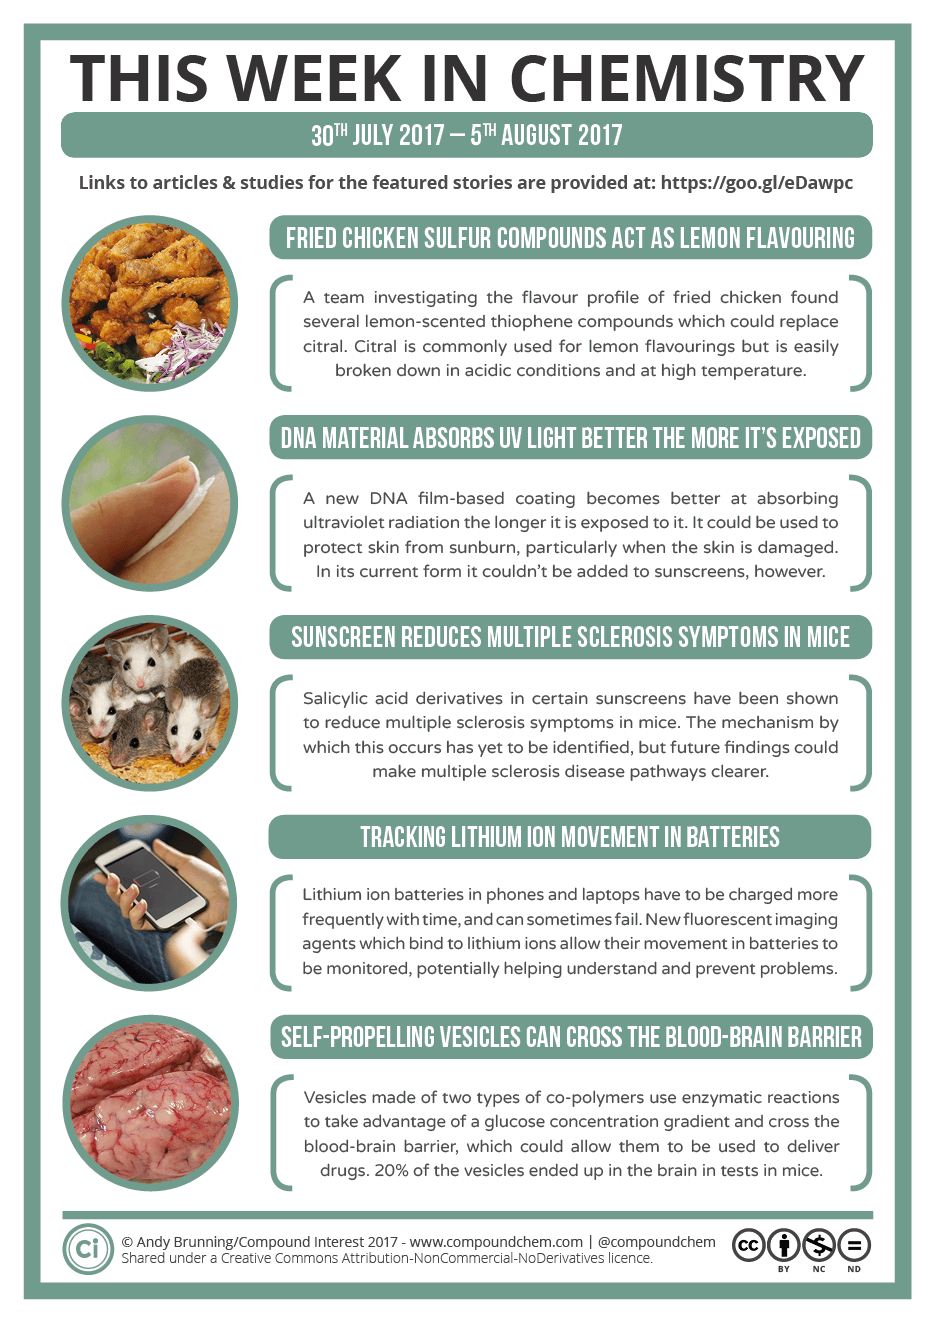 This Week in Chemistry – Fried chicken provides lemon flavour